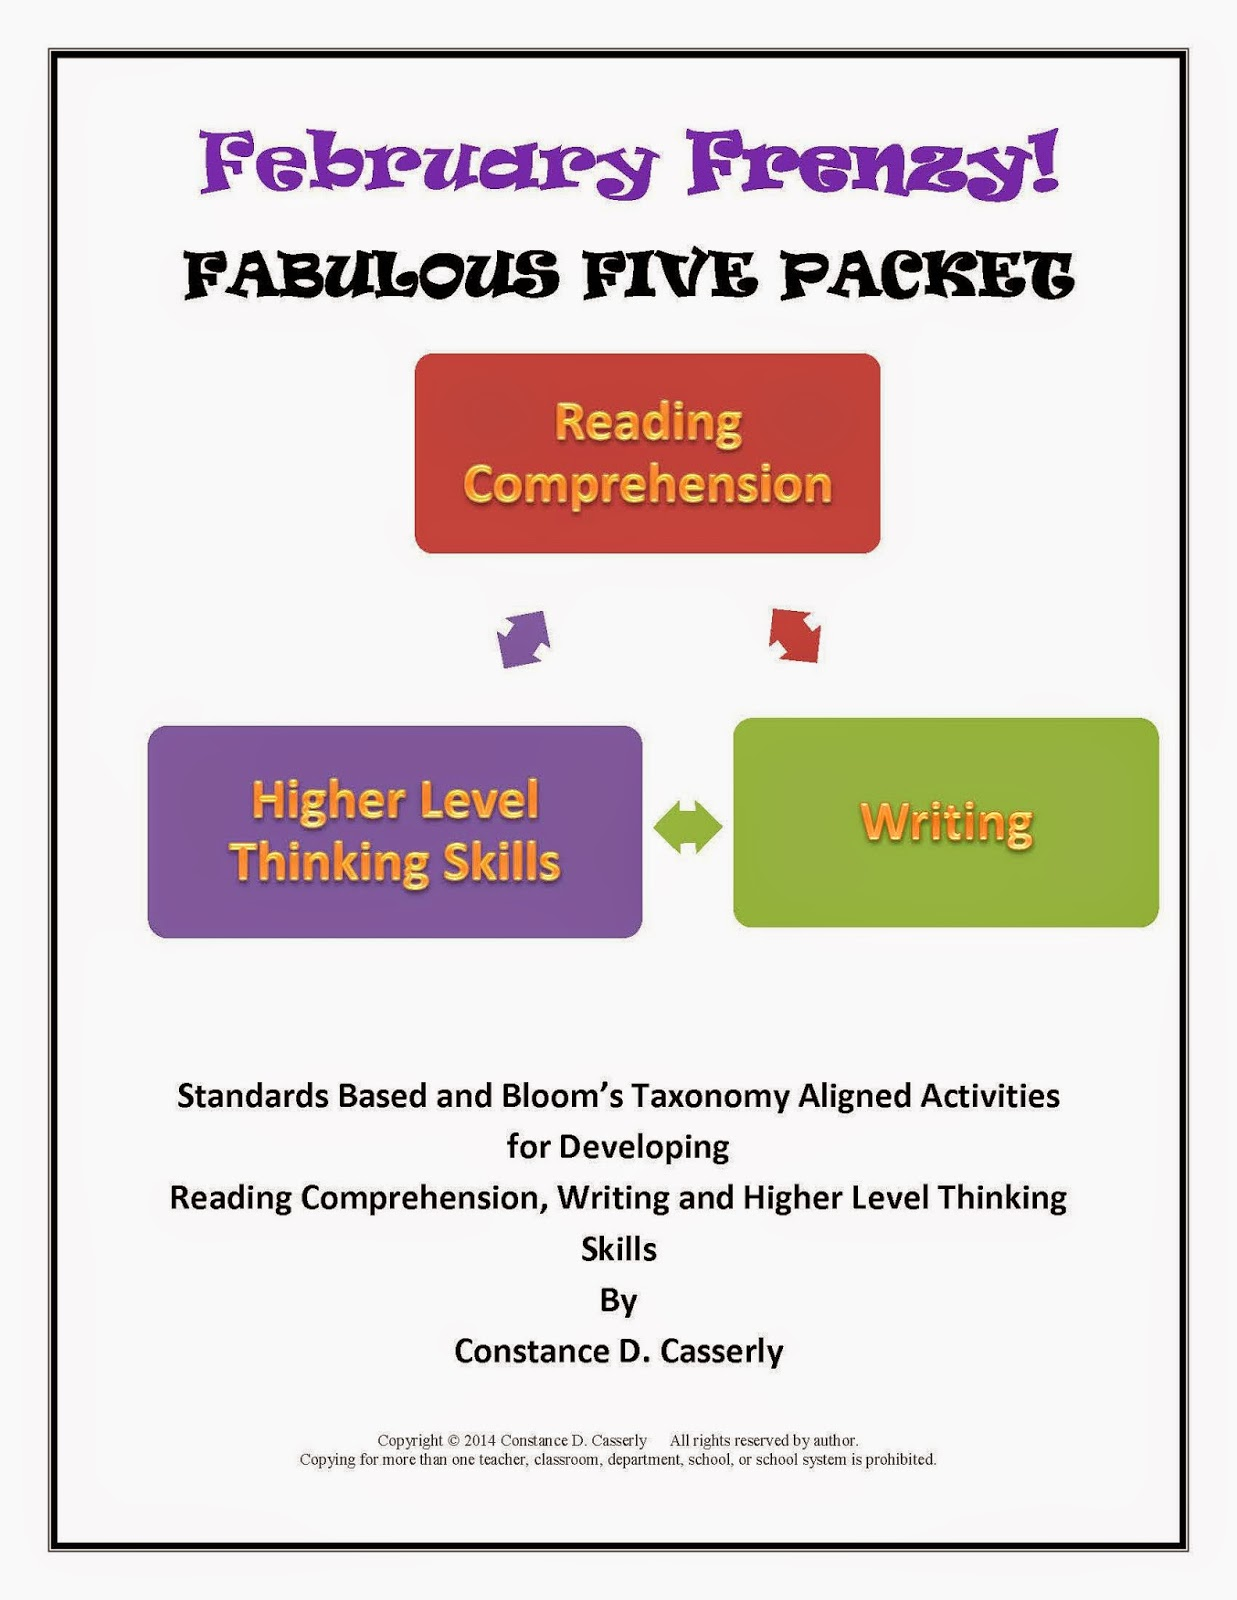 February Frenzy- Fabulous Five Packet